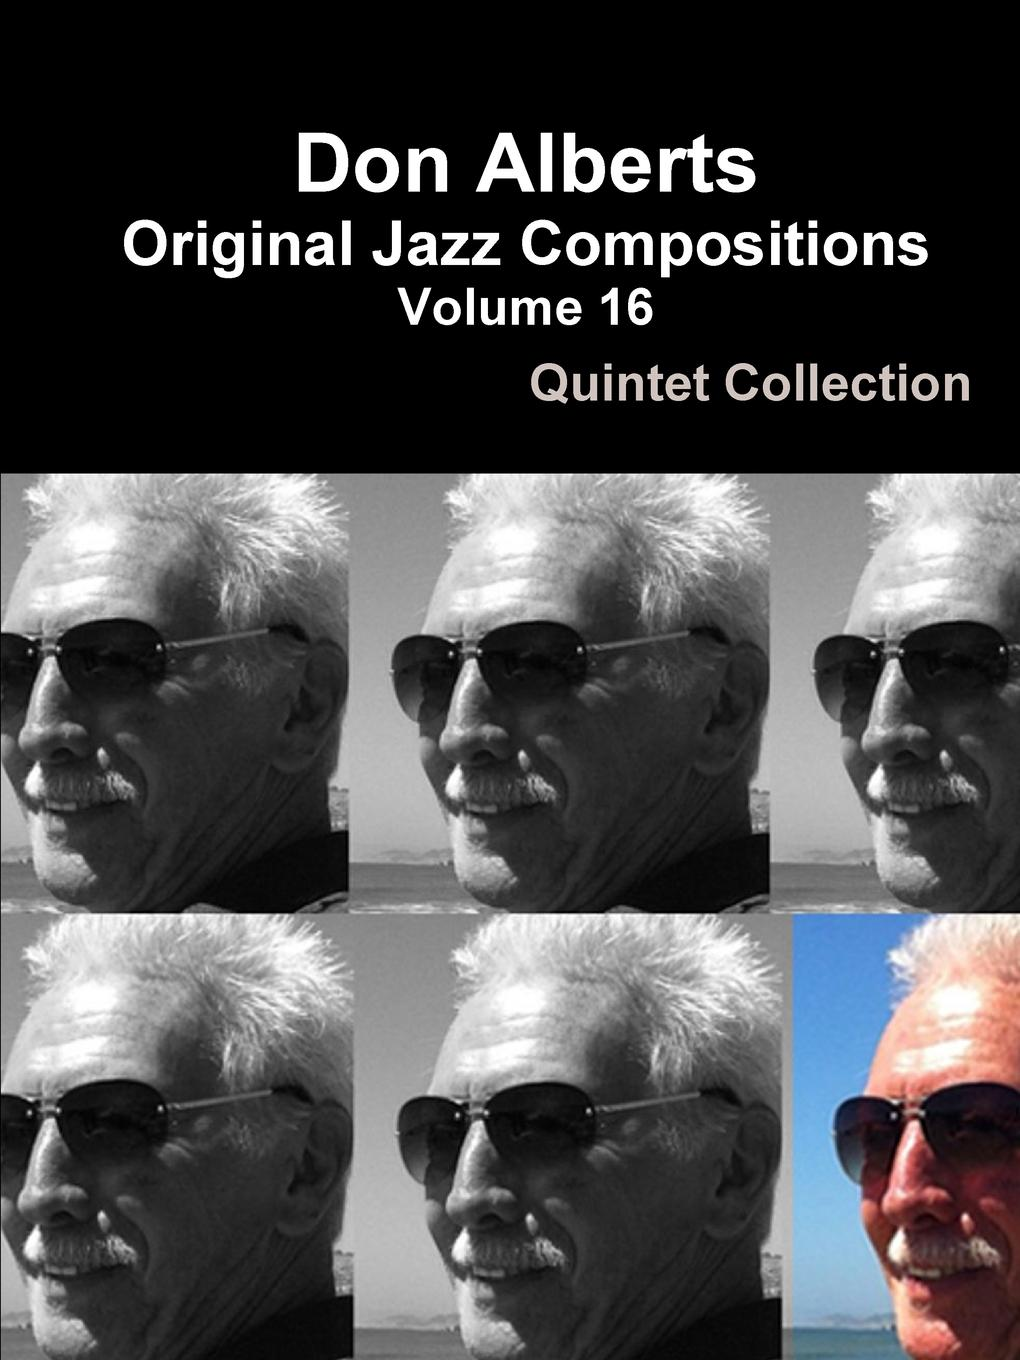 Don Alberts Don Alberts Original Jazz Compositions Volume 16 slw 866 dark red mini finger touch jazz drums music game set red silver 3 x aaa